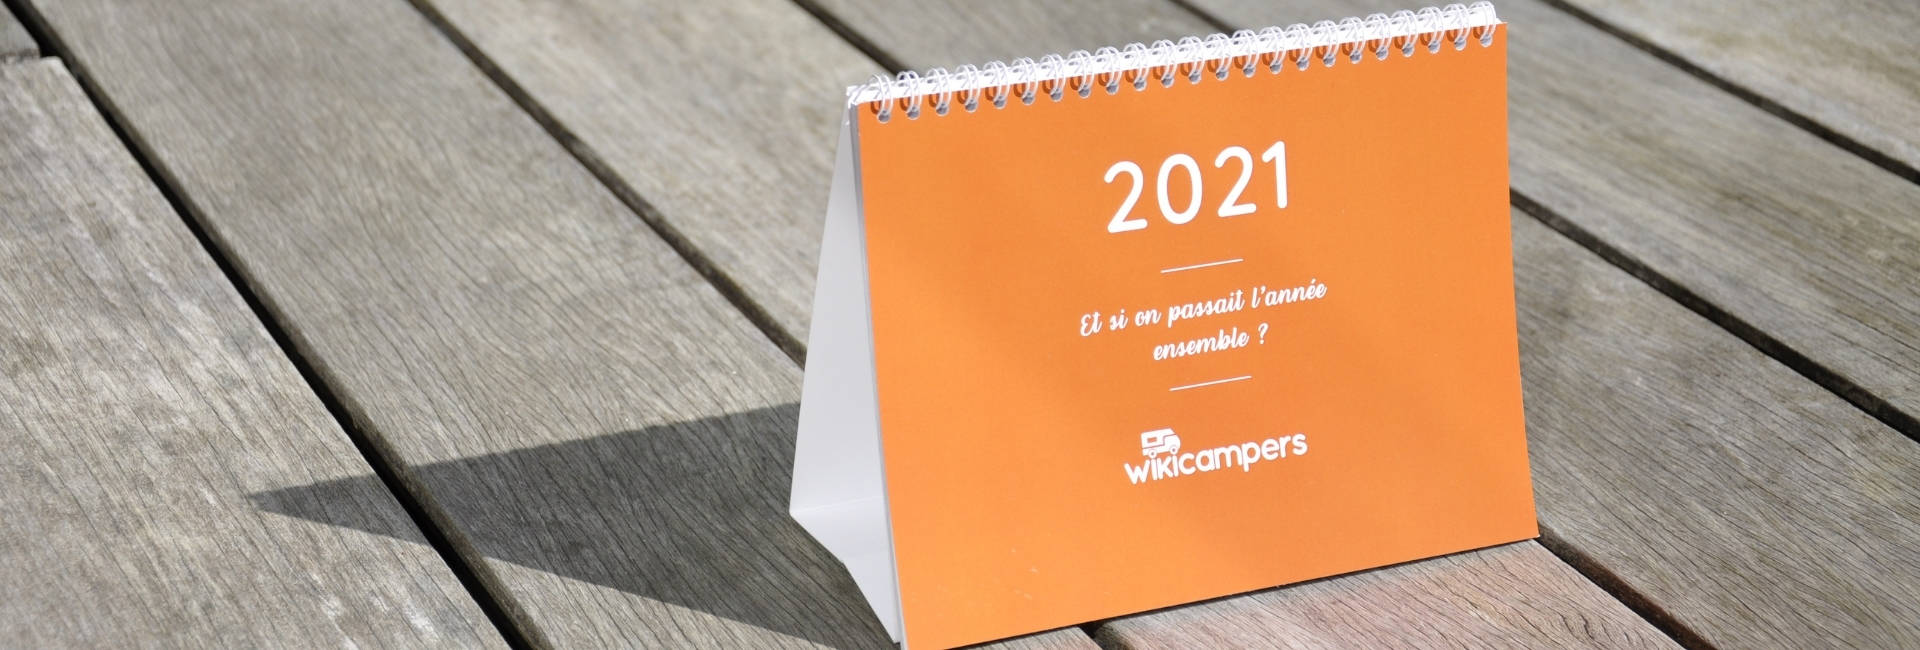 Slider-boutique-commandez-calendrier-2021